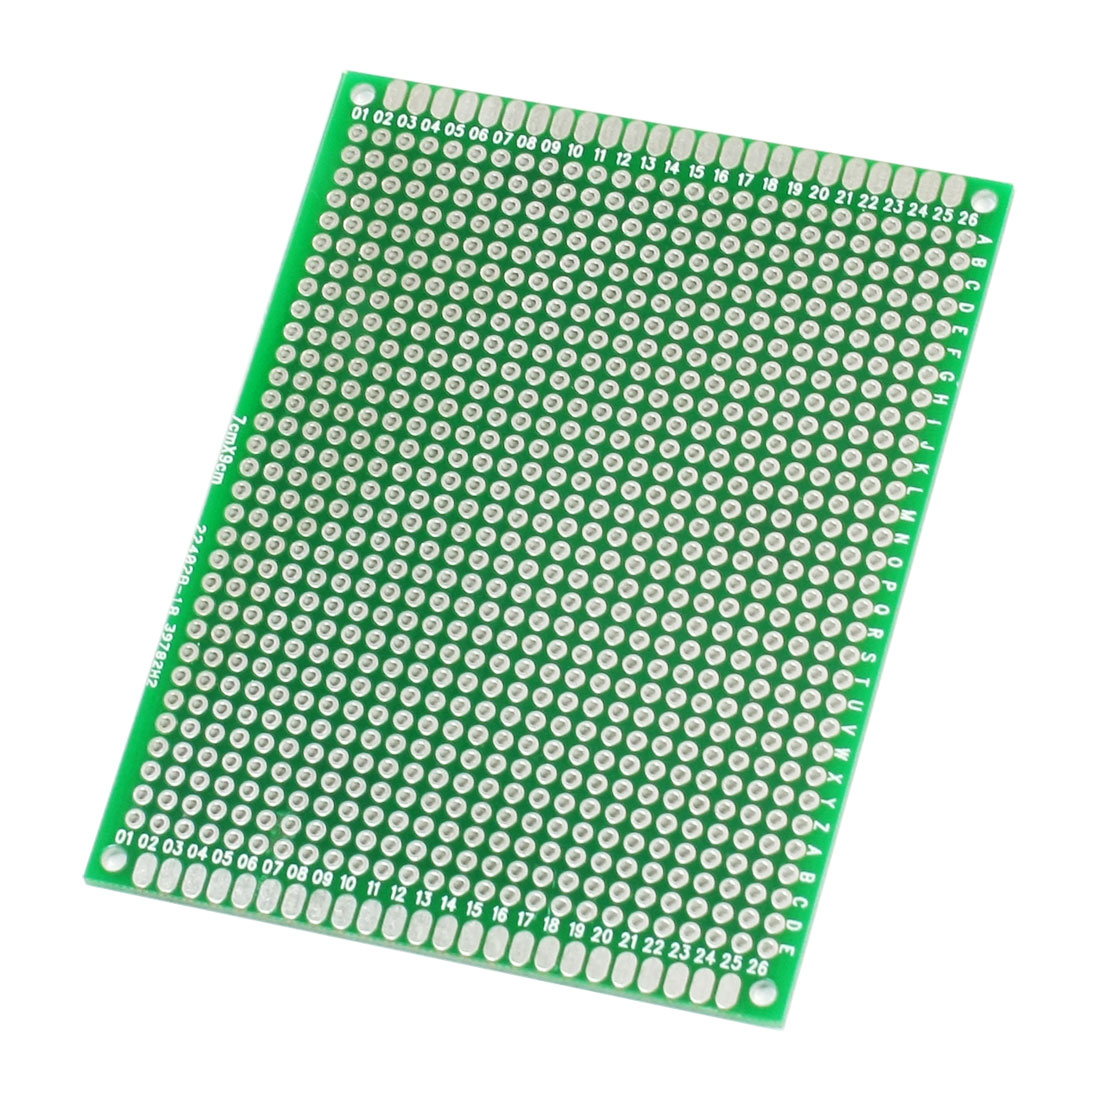 Electronic DIY Universal Double Sided Protoboard Glass Fiber Prototyping PCB Printed Circuit Board 7cm x 9cm